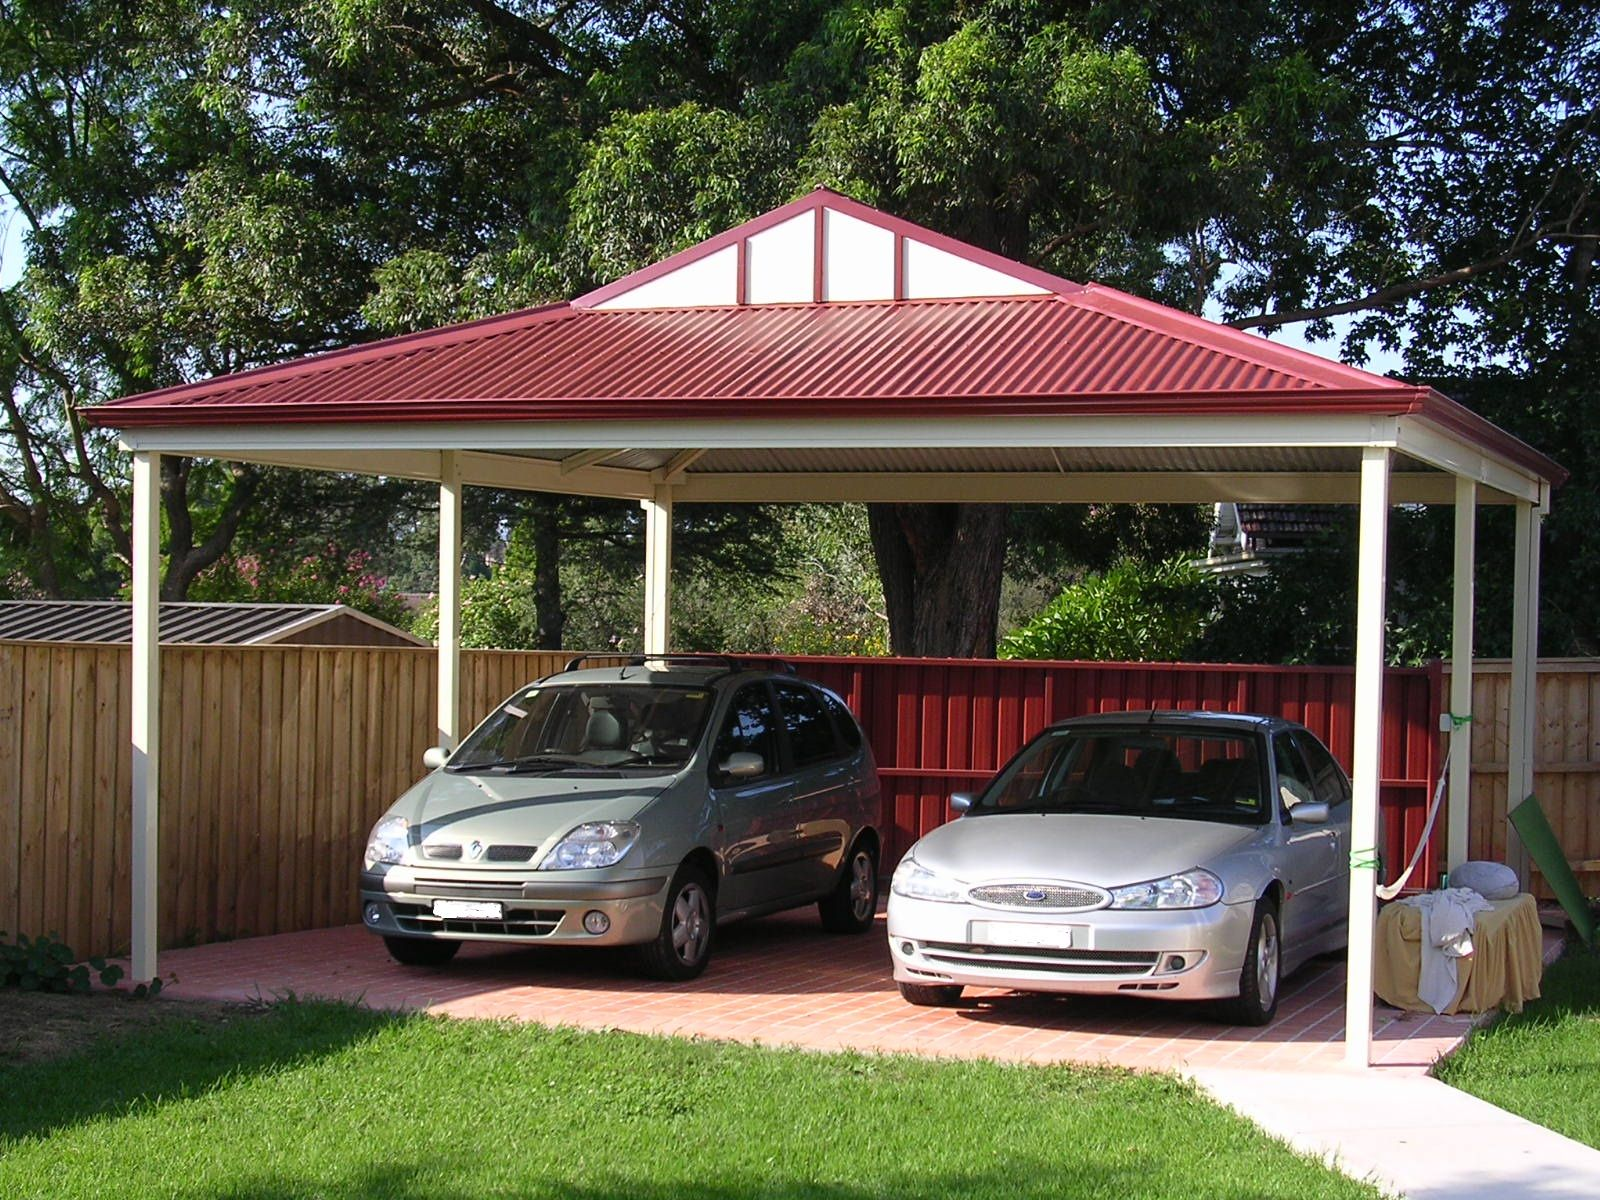 Double carport Brisbane Carport designs, Double carport